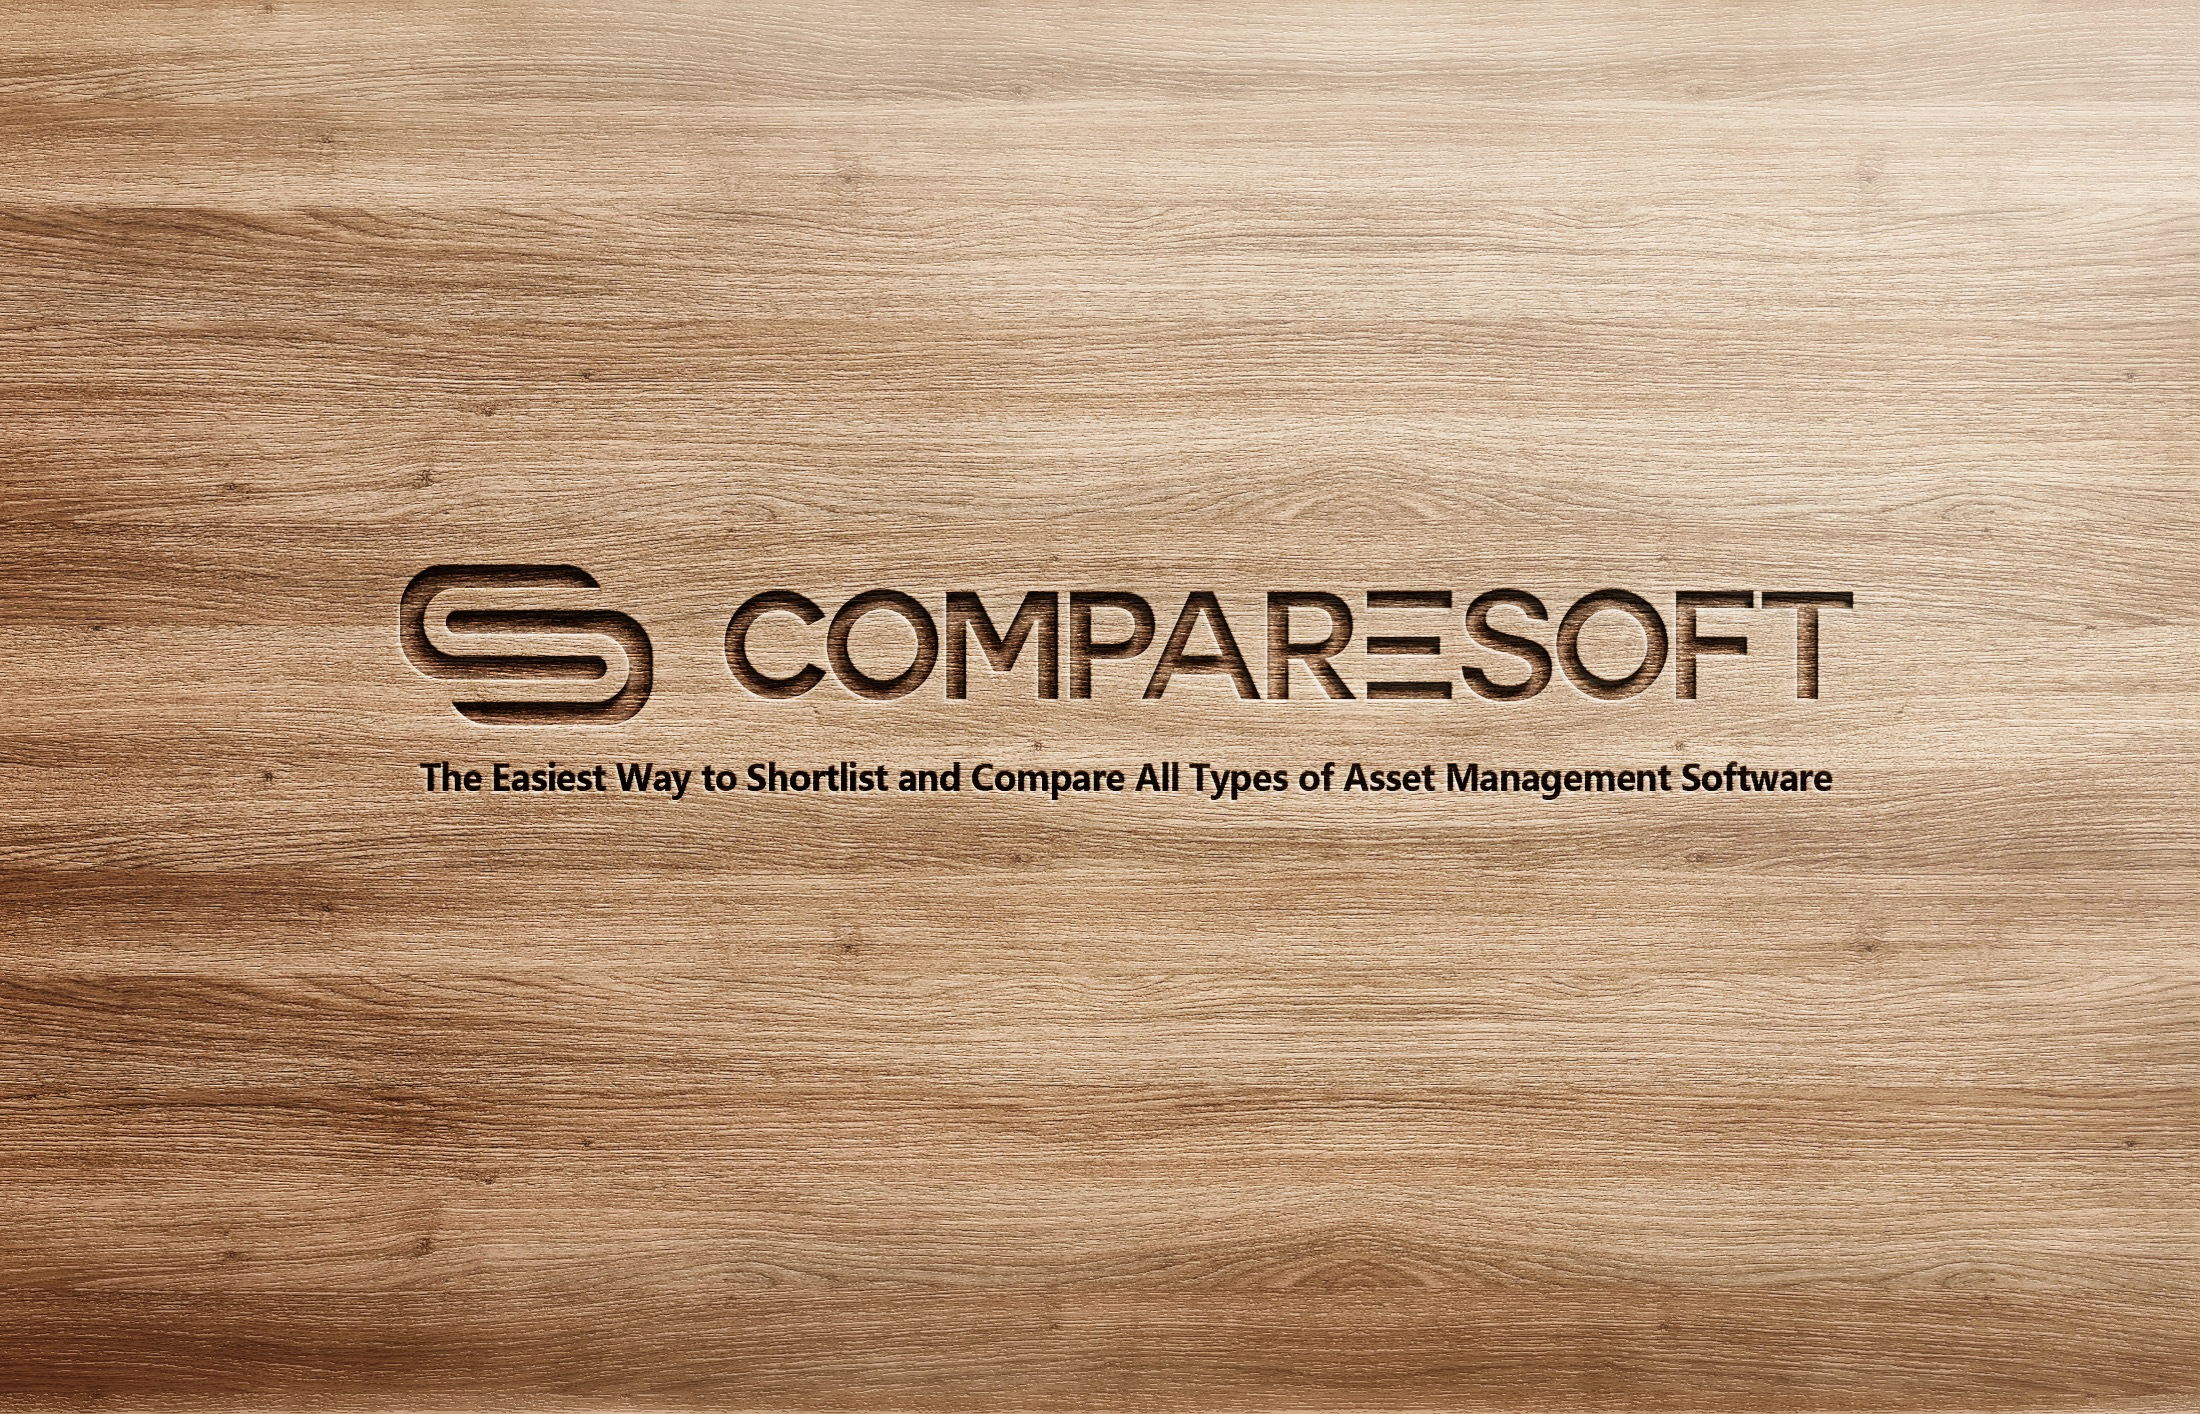 Comparesoft Logo on Wood